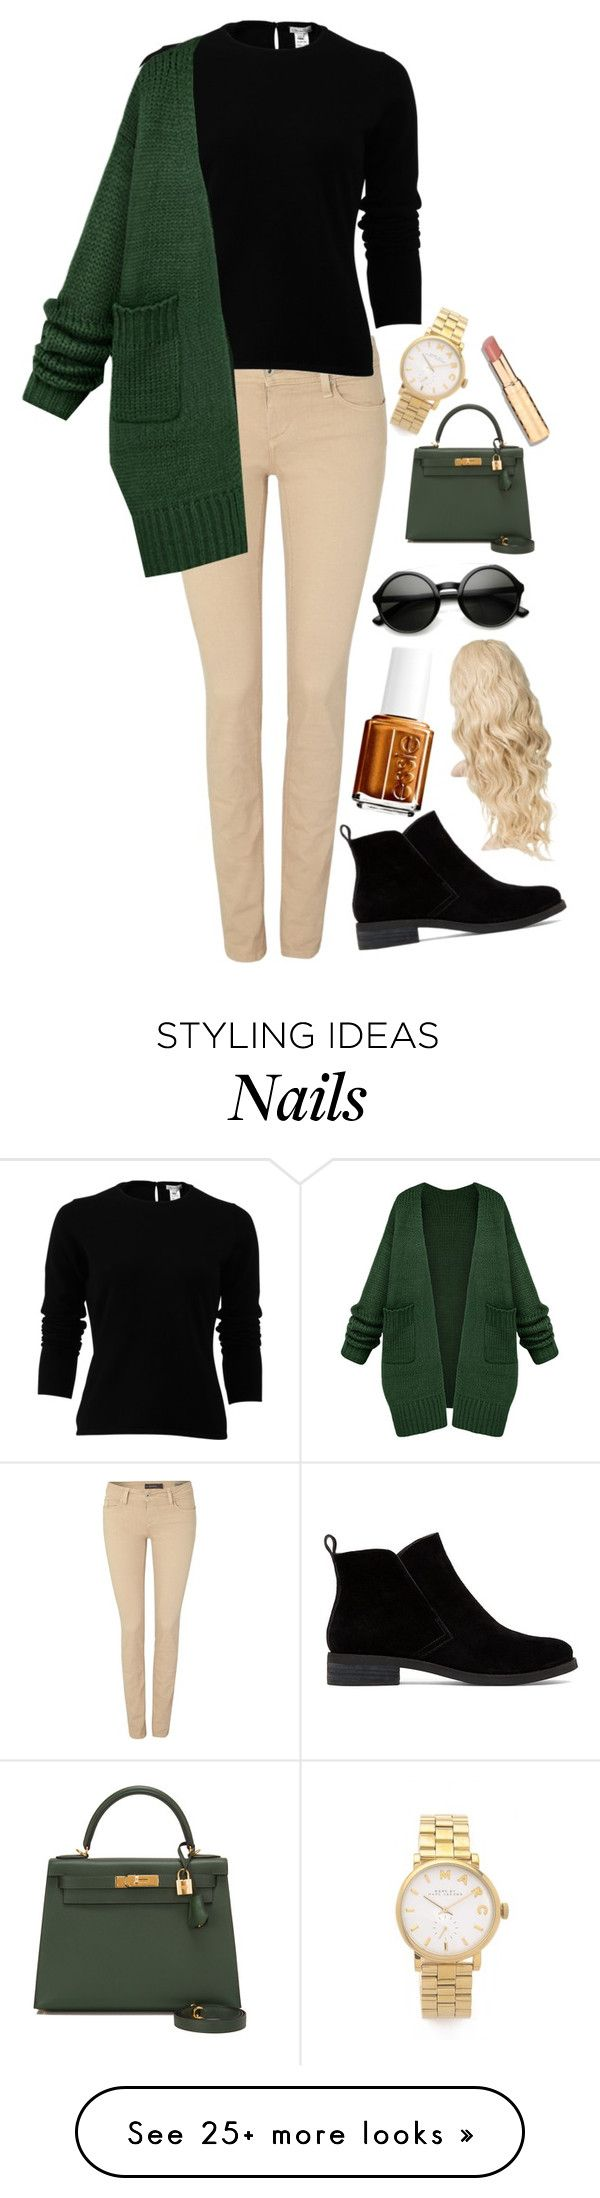 """Green cardigan"" by taylahjordan on Polyvore featuring Marc by Marc Jacobs, Salsa, Lucky Brand, Oscar de la Renta, Hermès and Essie"